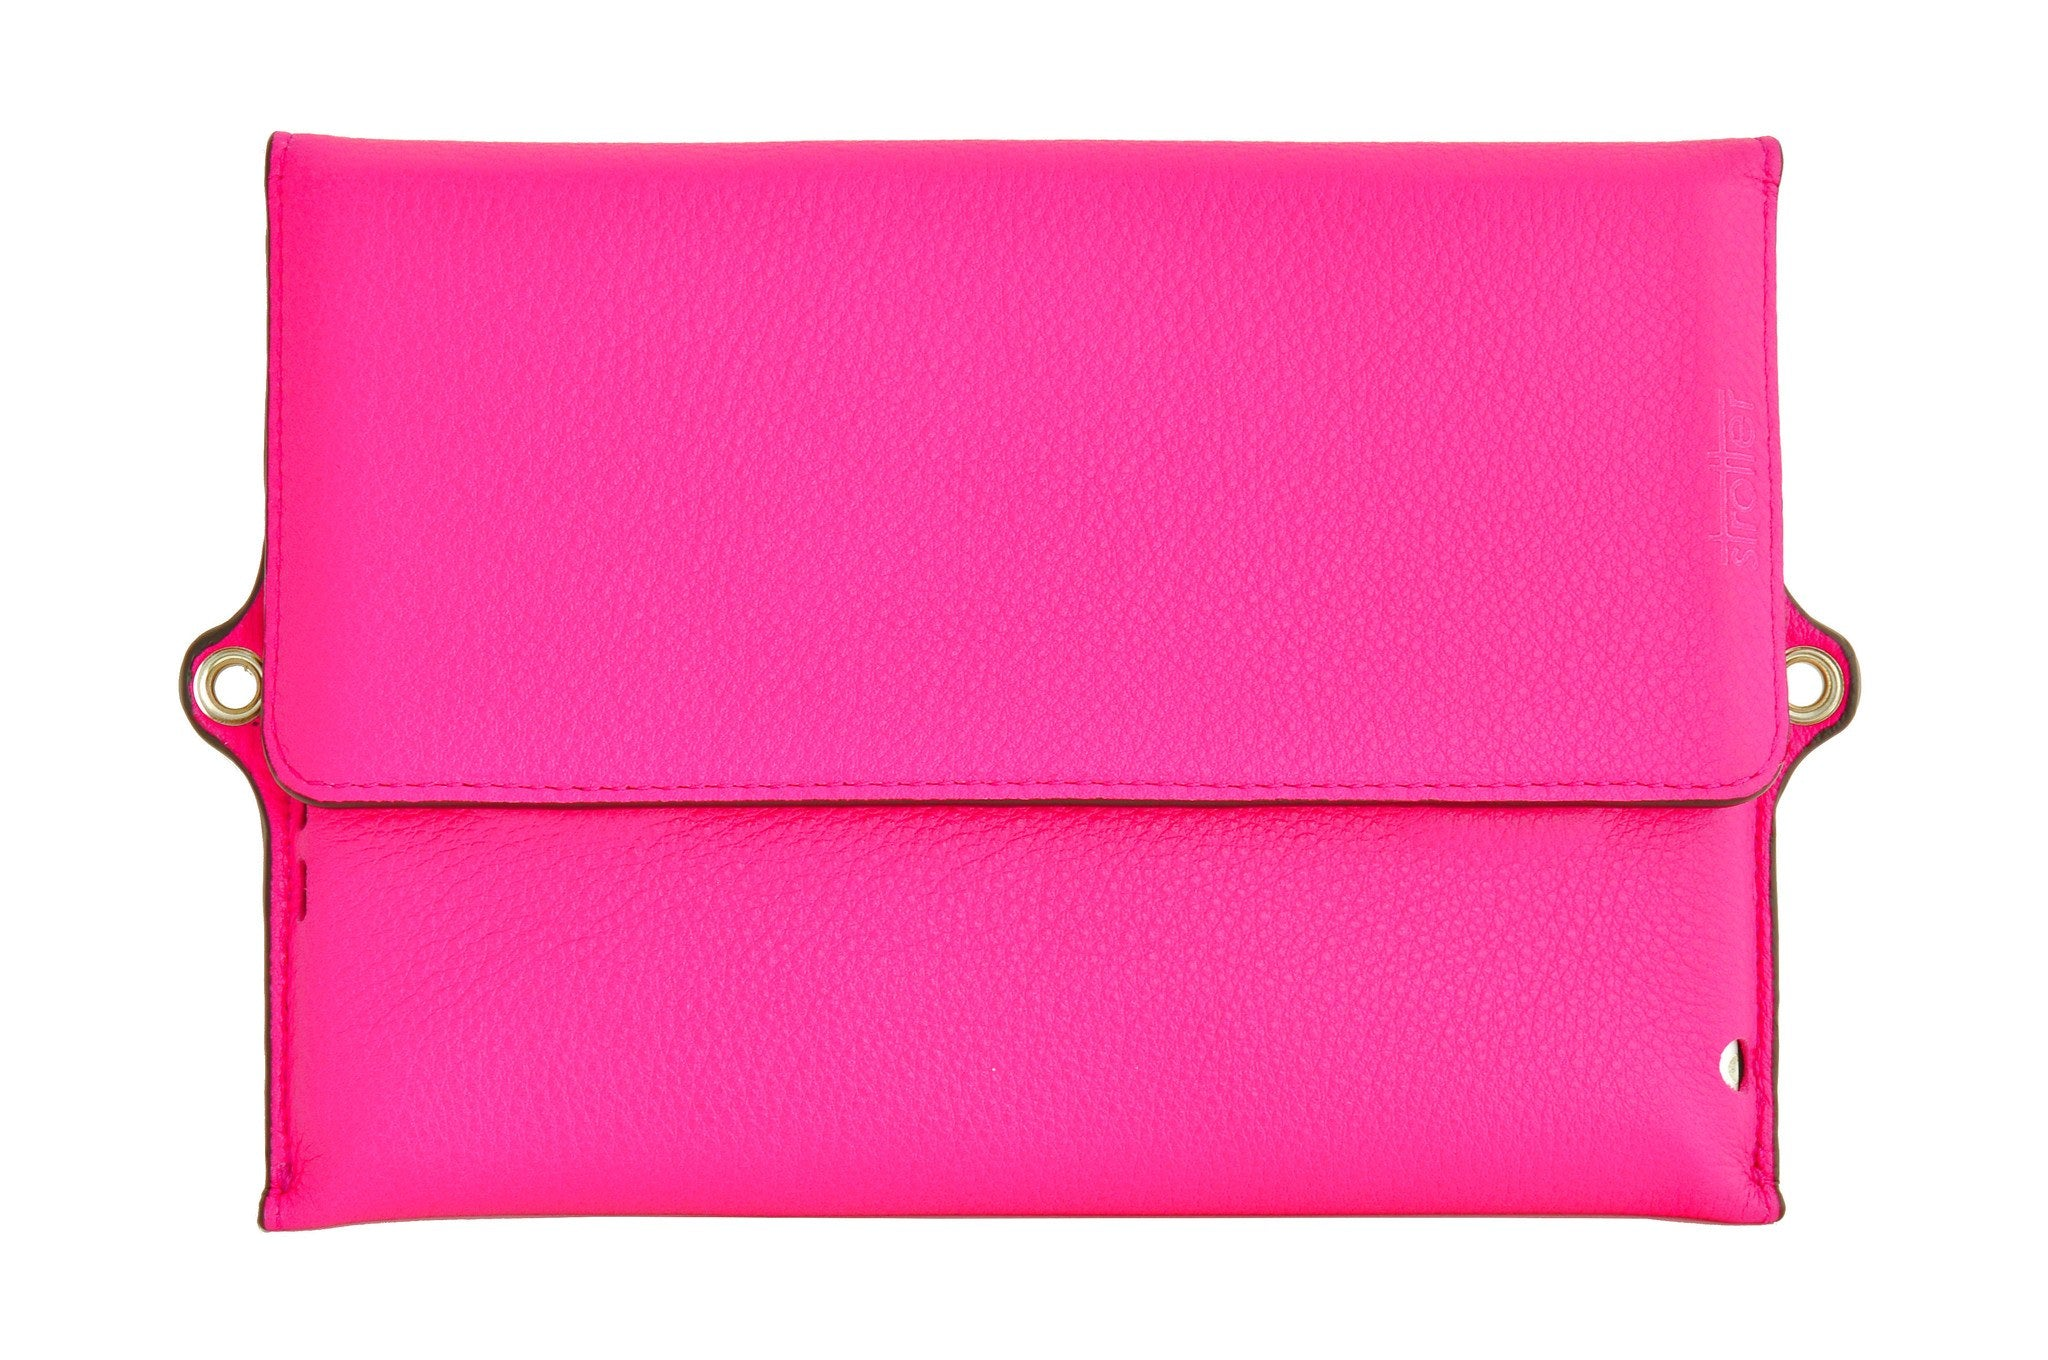 Case for iPad Mini - Across GL (genuine leather) in Super Pink.